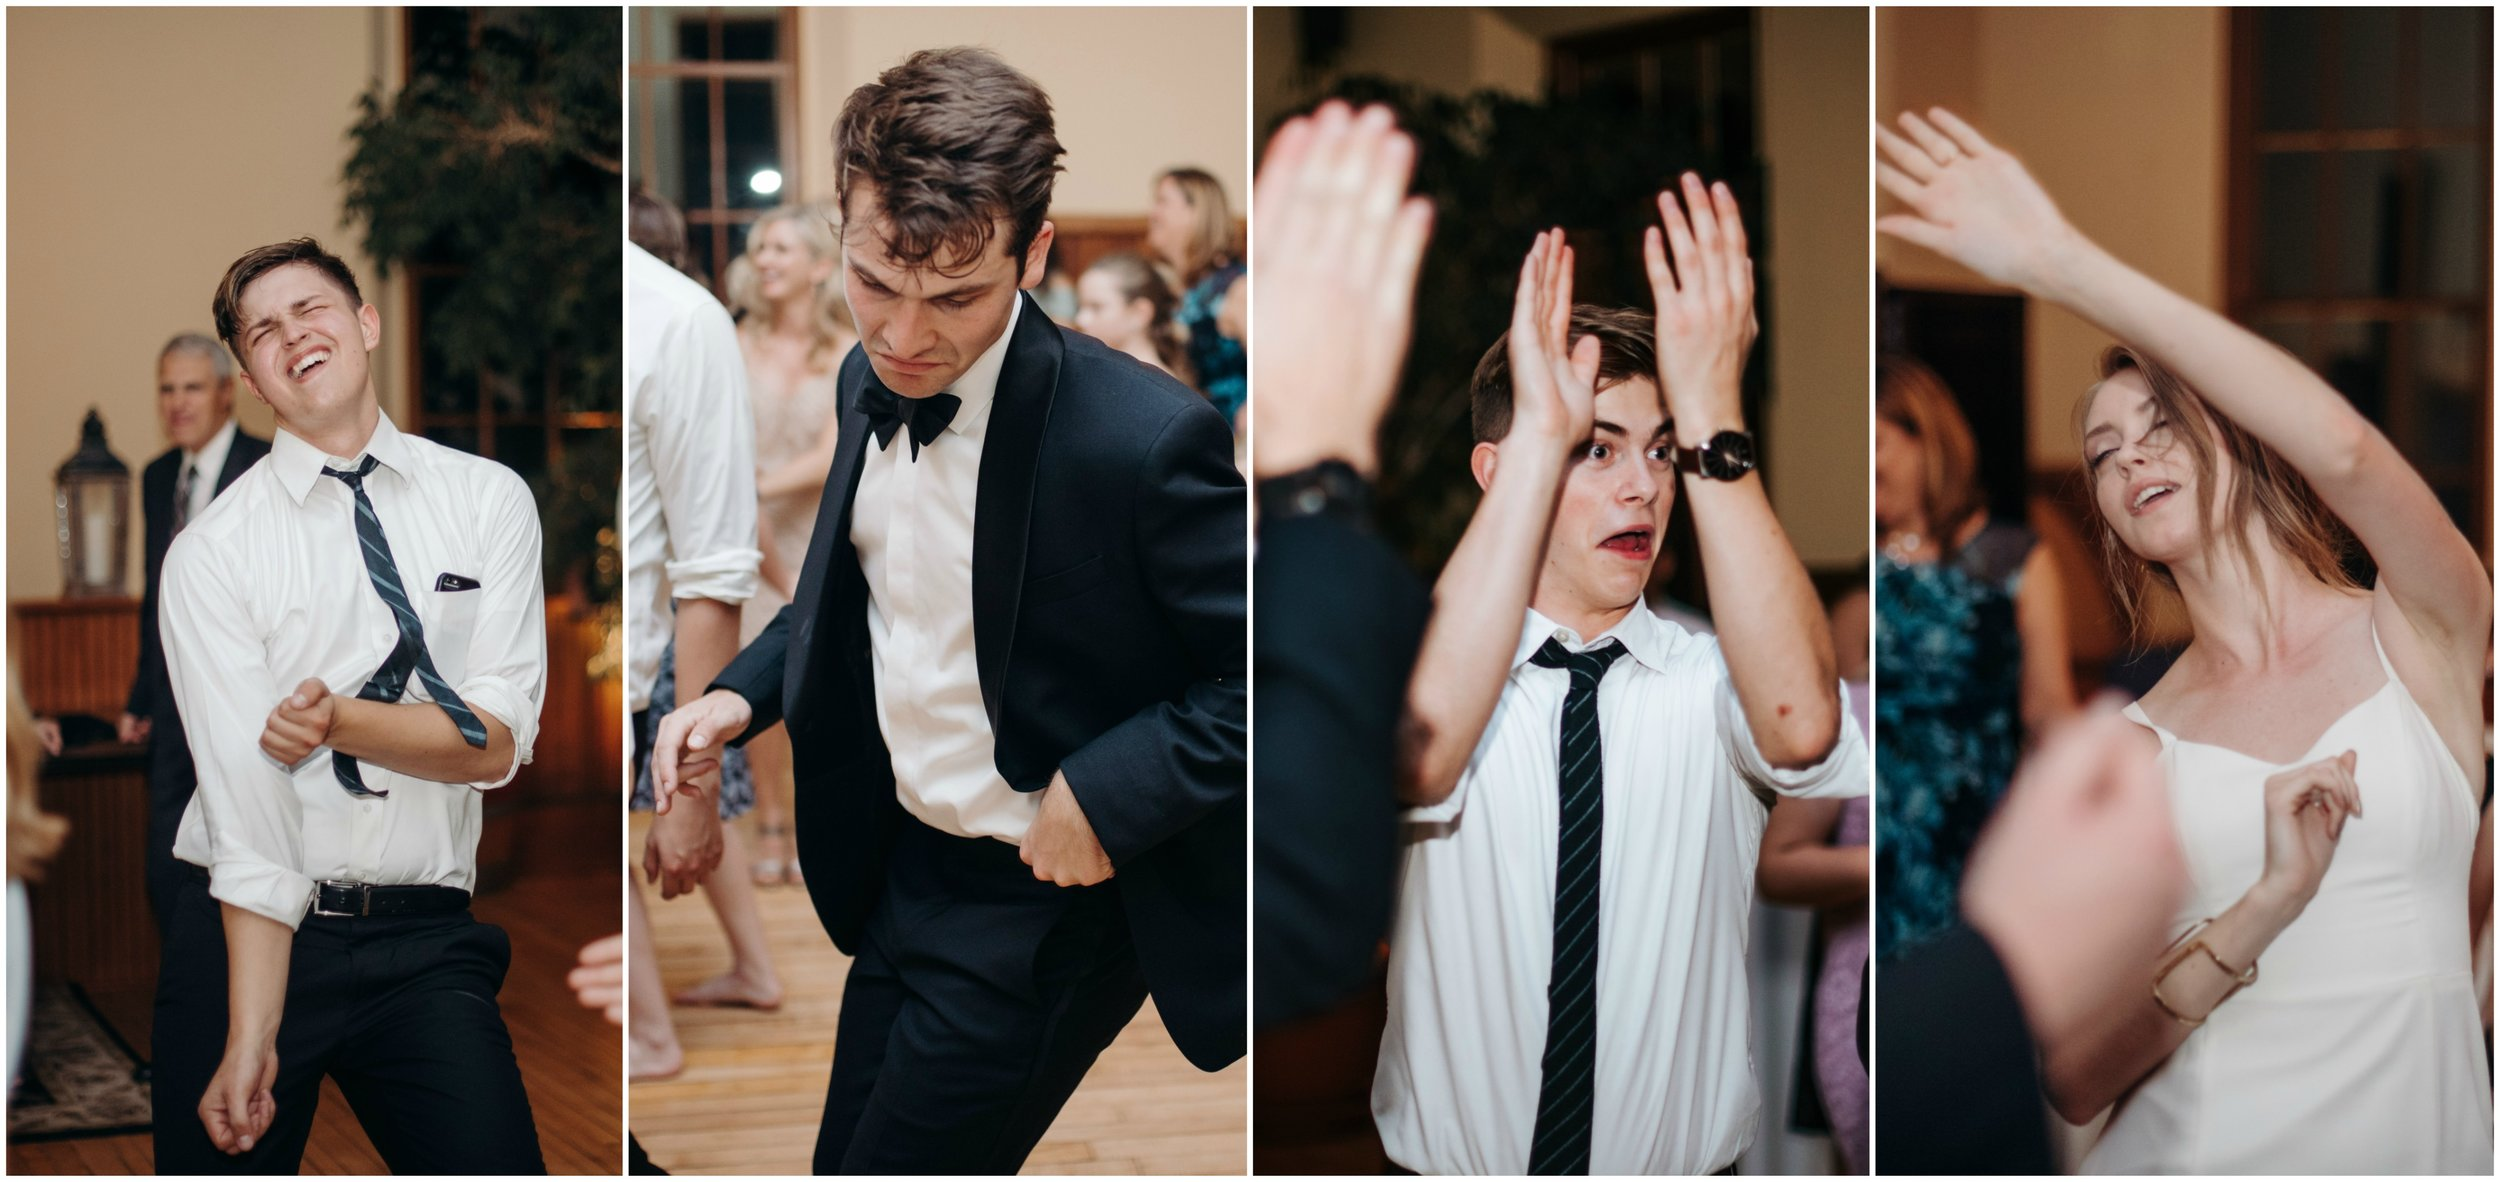 jake-kendra-erie-wedding-dancing.jpg